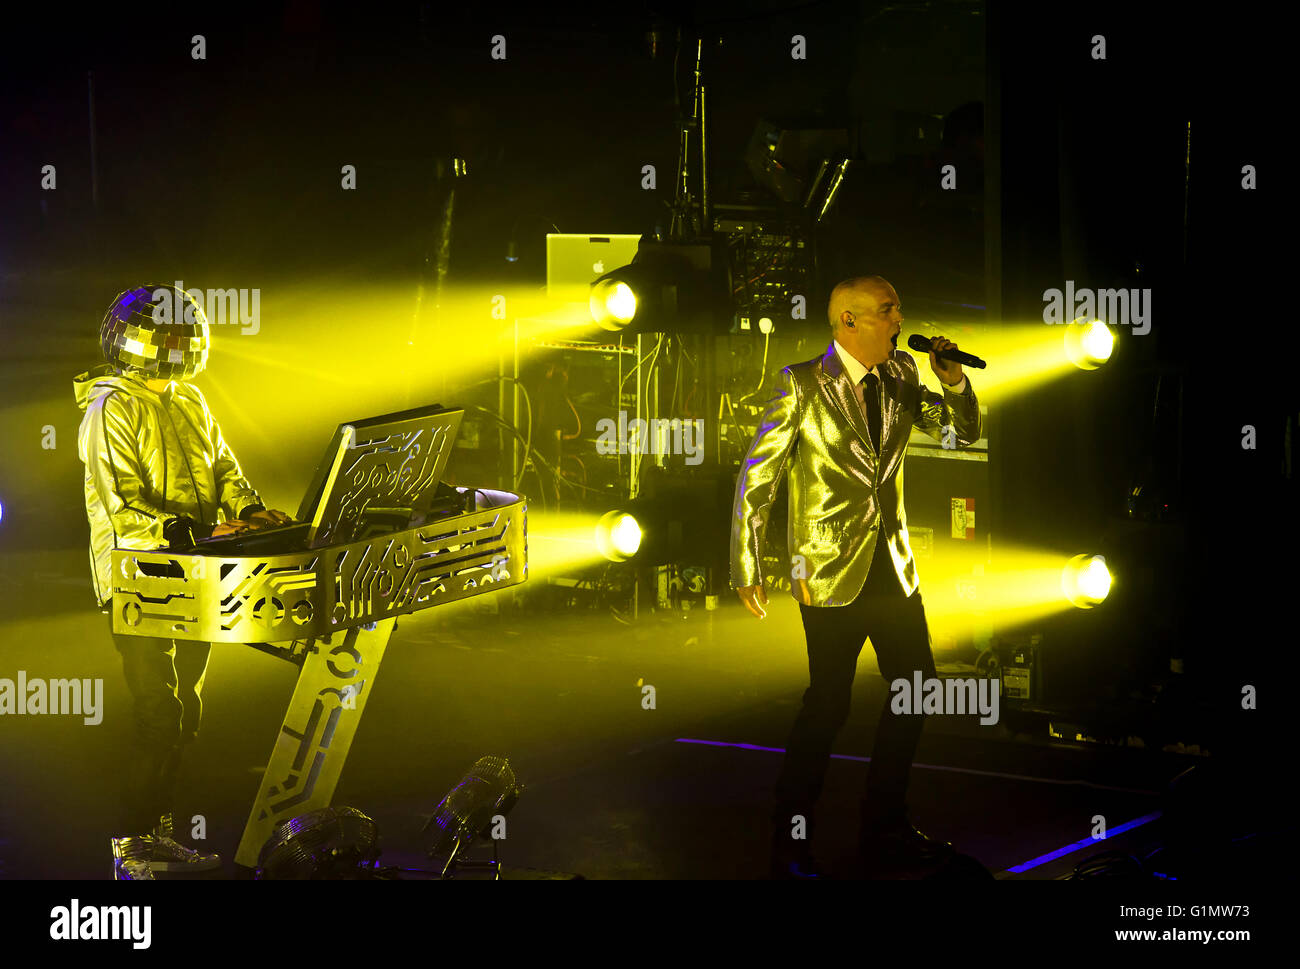 Neil Tennant and Chris Lowe of the 'Pet Shop Boys' performing on stage - Stock Image